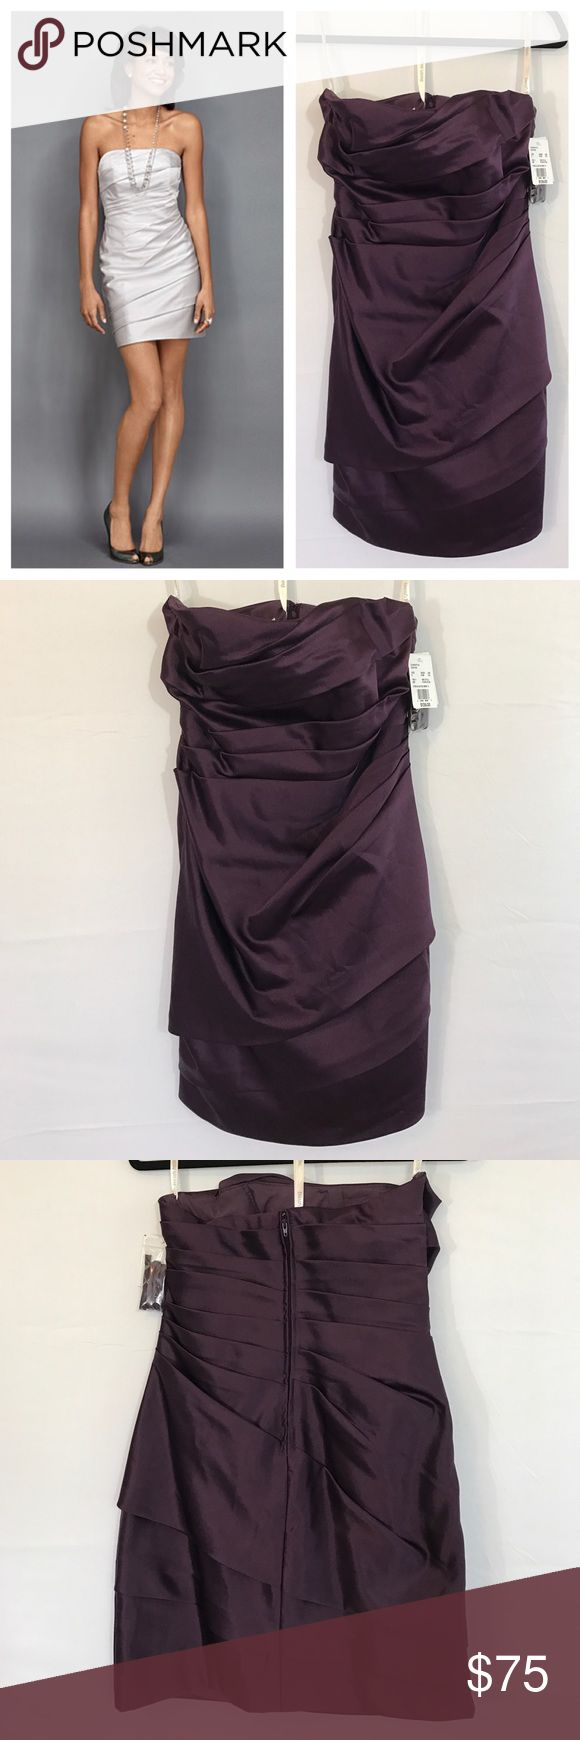 """David's Bridal-Plum-STRPLS SATIN SHORT Dress This is a beautiful dark purple dress!  Across the back from armpit to armpit measures approx. 16 1/2"""".  The total length is approx. 25"""". David's Bridal Dresses Mini"""